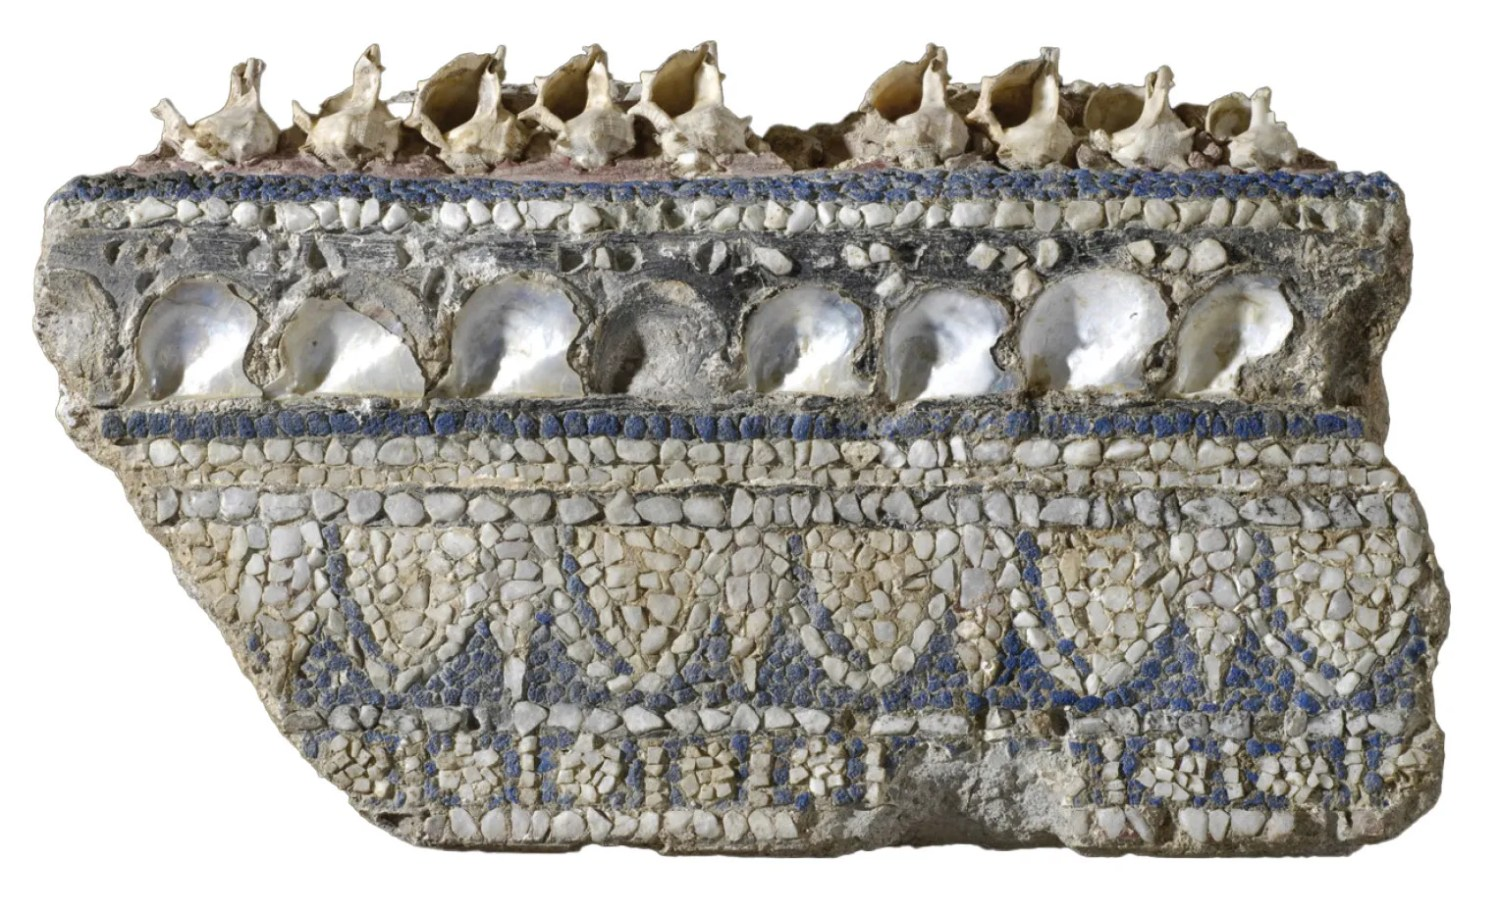 RIGHT Wall-mosaic with sea shells and glass and marble tesserae, found during work to open the Via dell'Impero. Mid 1st century AD.